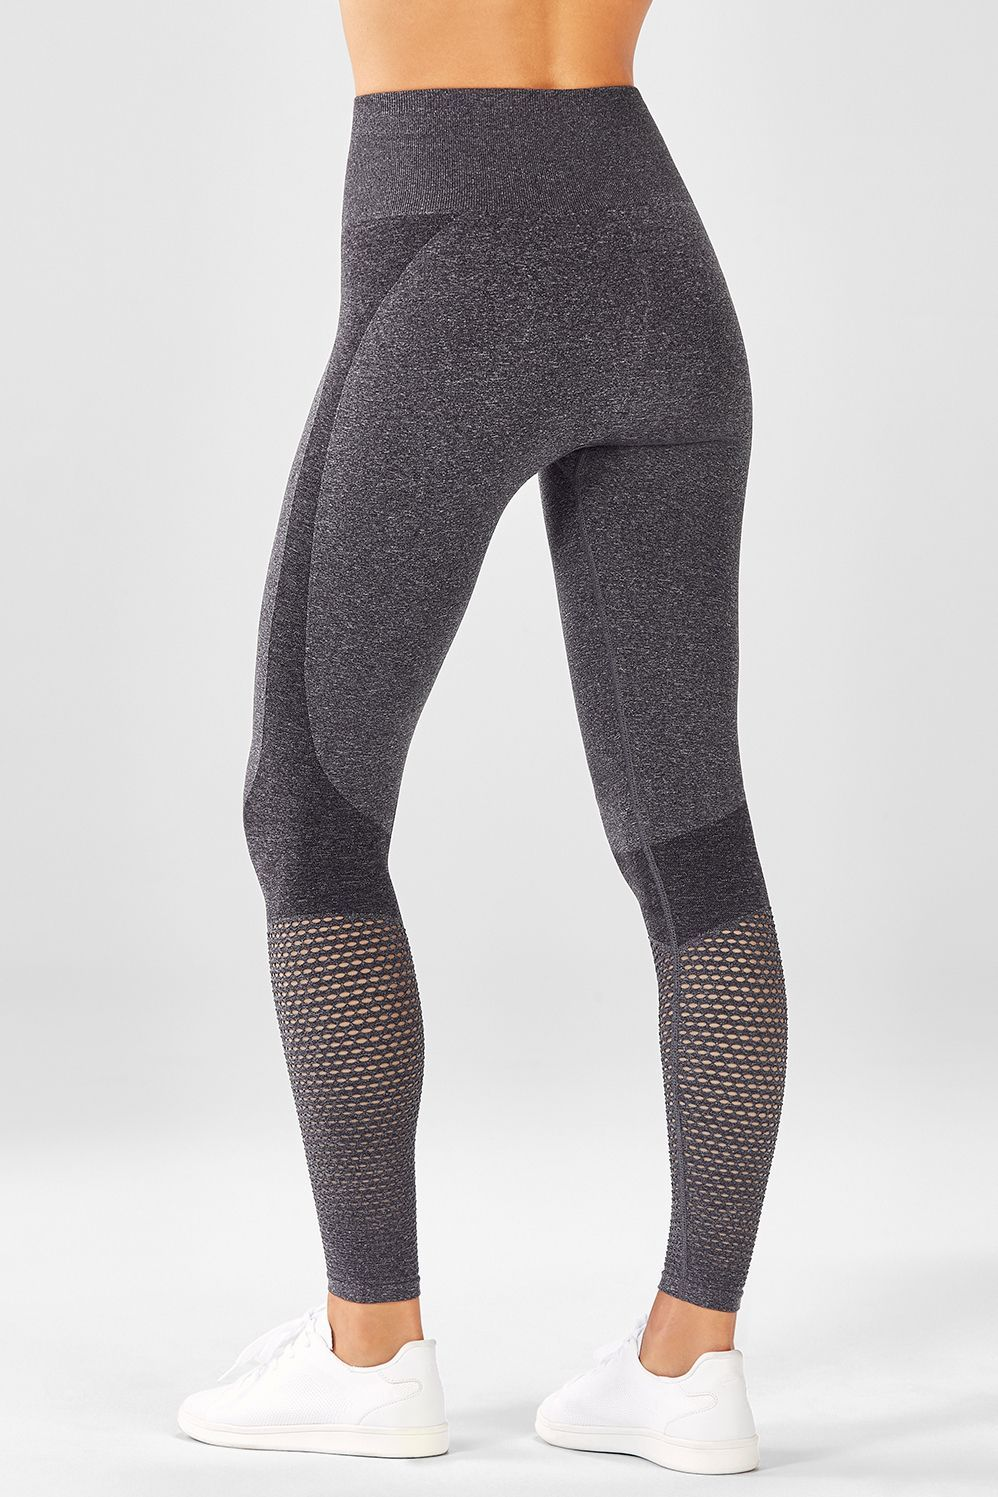 4229e0a370 Seamless High-Waisted Mesh Legging in 2019 | fabletics | Mesh ...